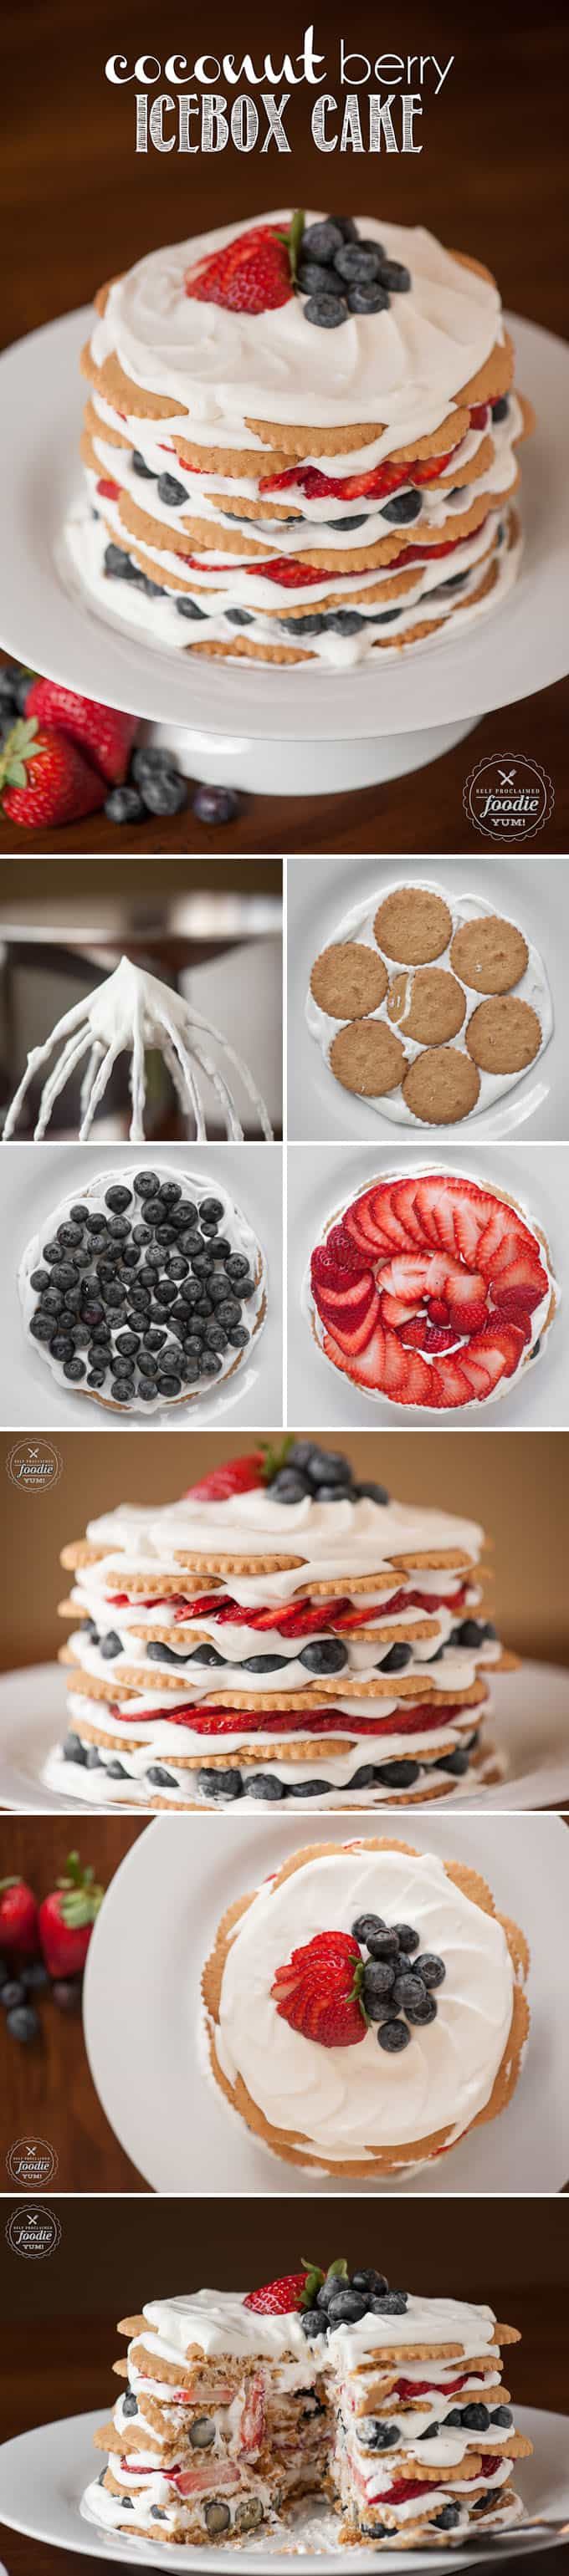 process photos for icebox cake recipe with coconut cookies and berries